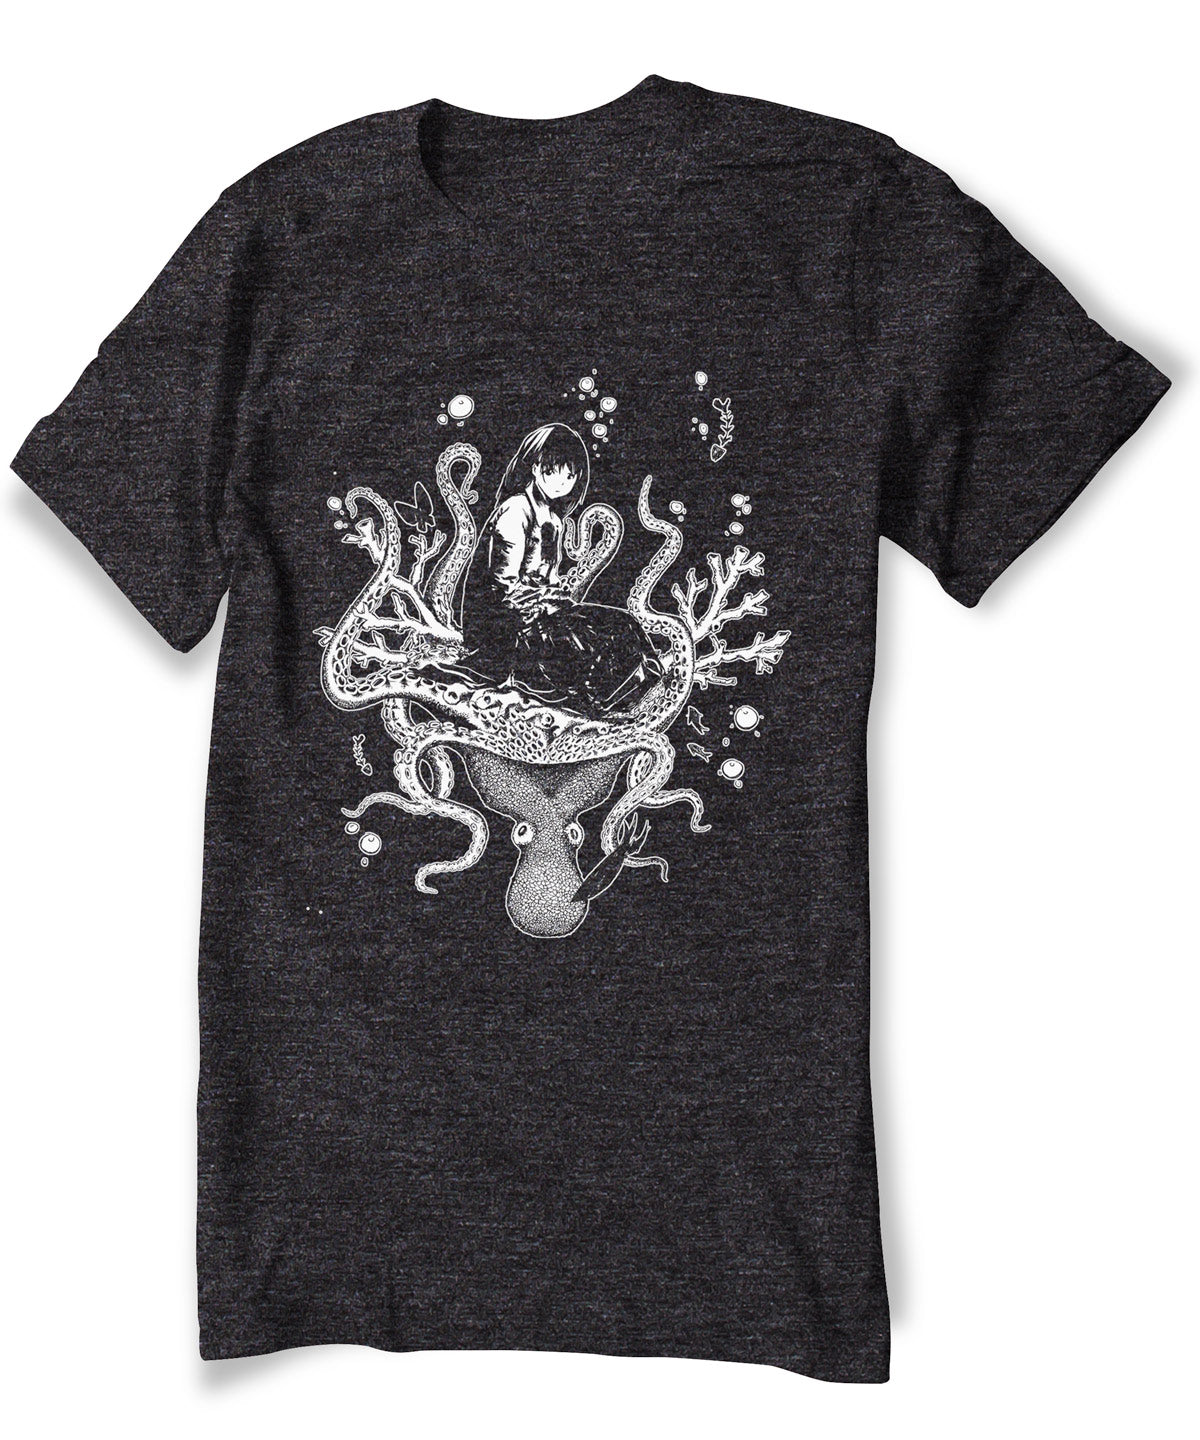 Anime octo Girl T-Shirt